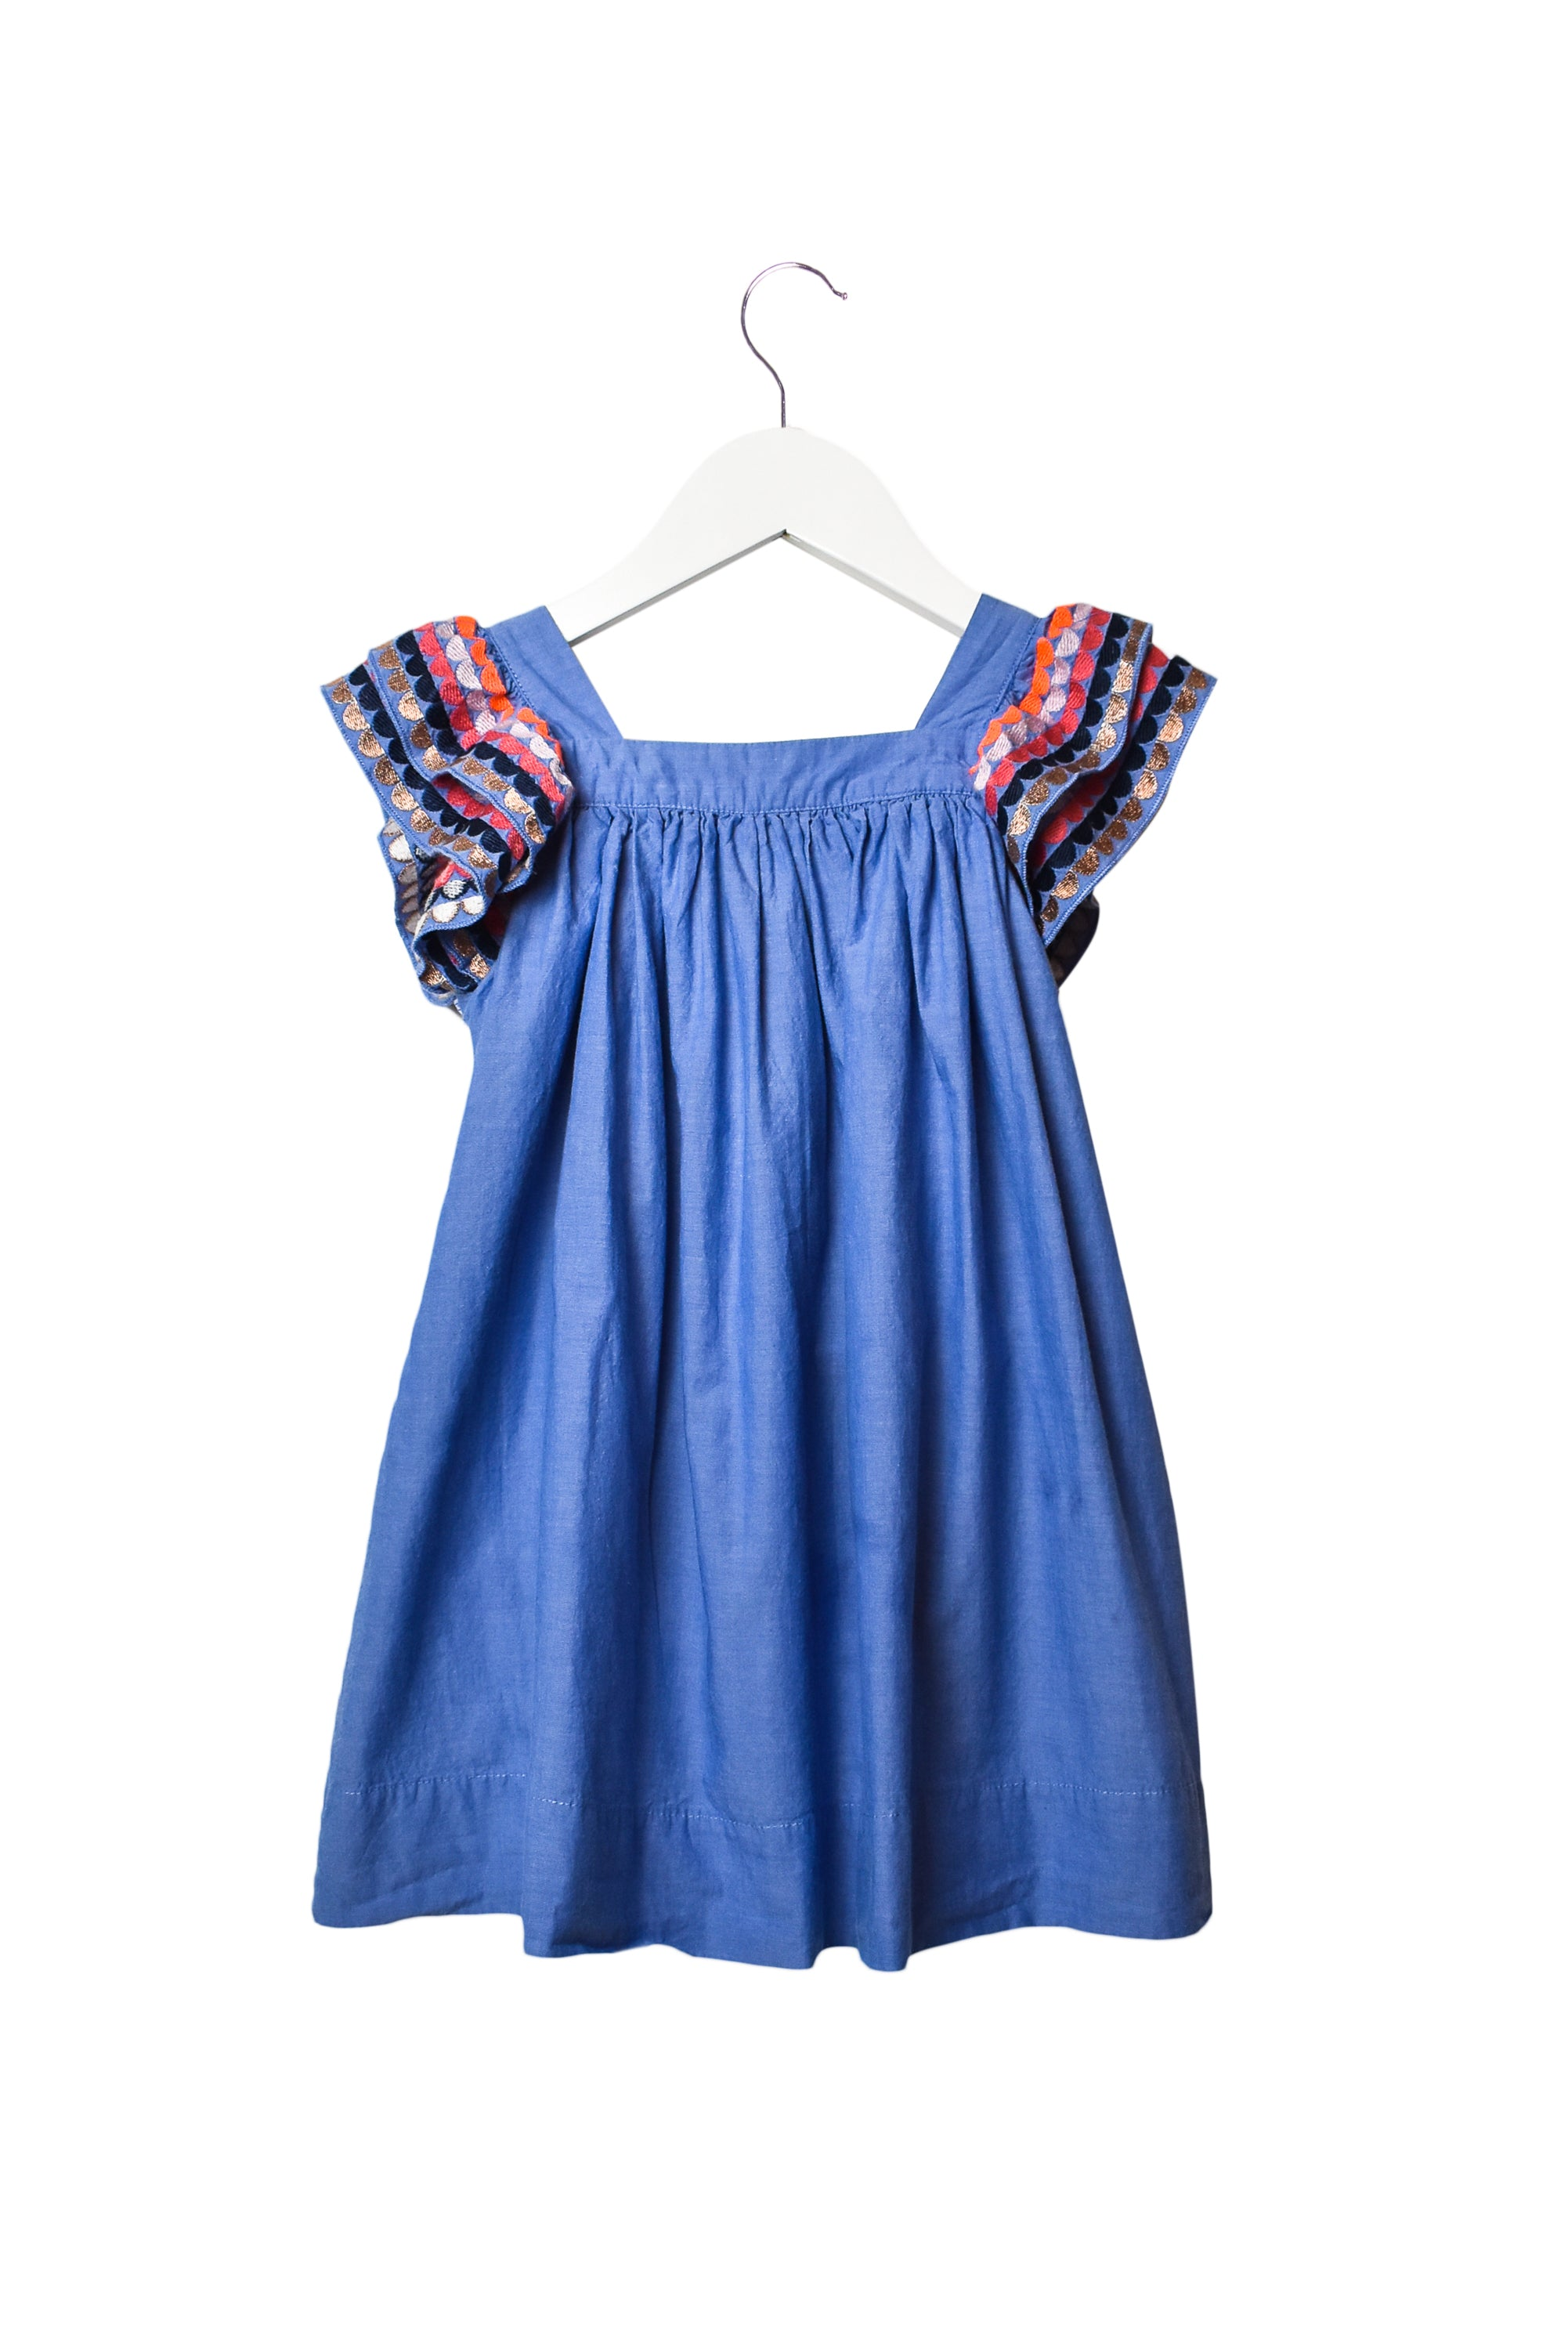 10007966 Seed Kids~ Dress 2-3T at Retykle